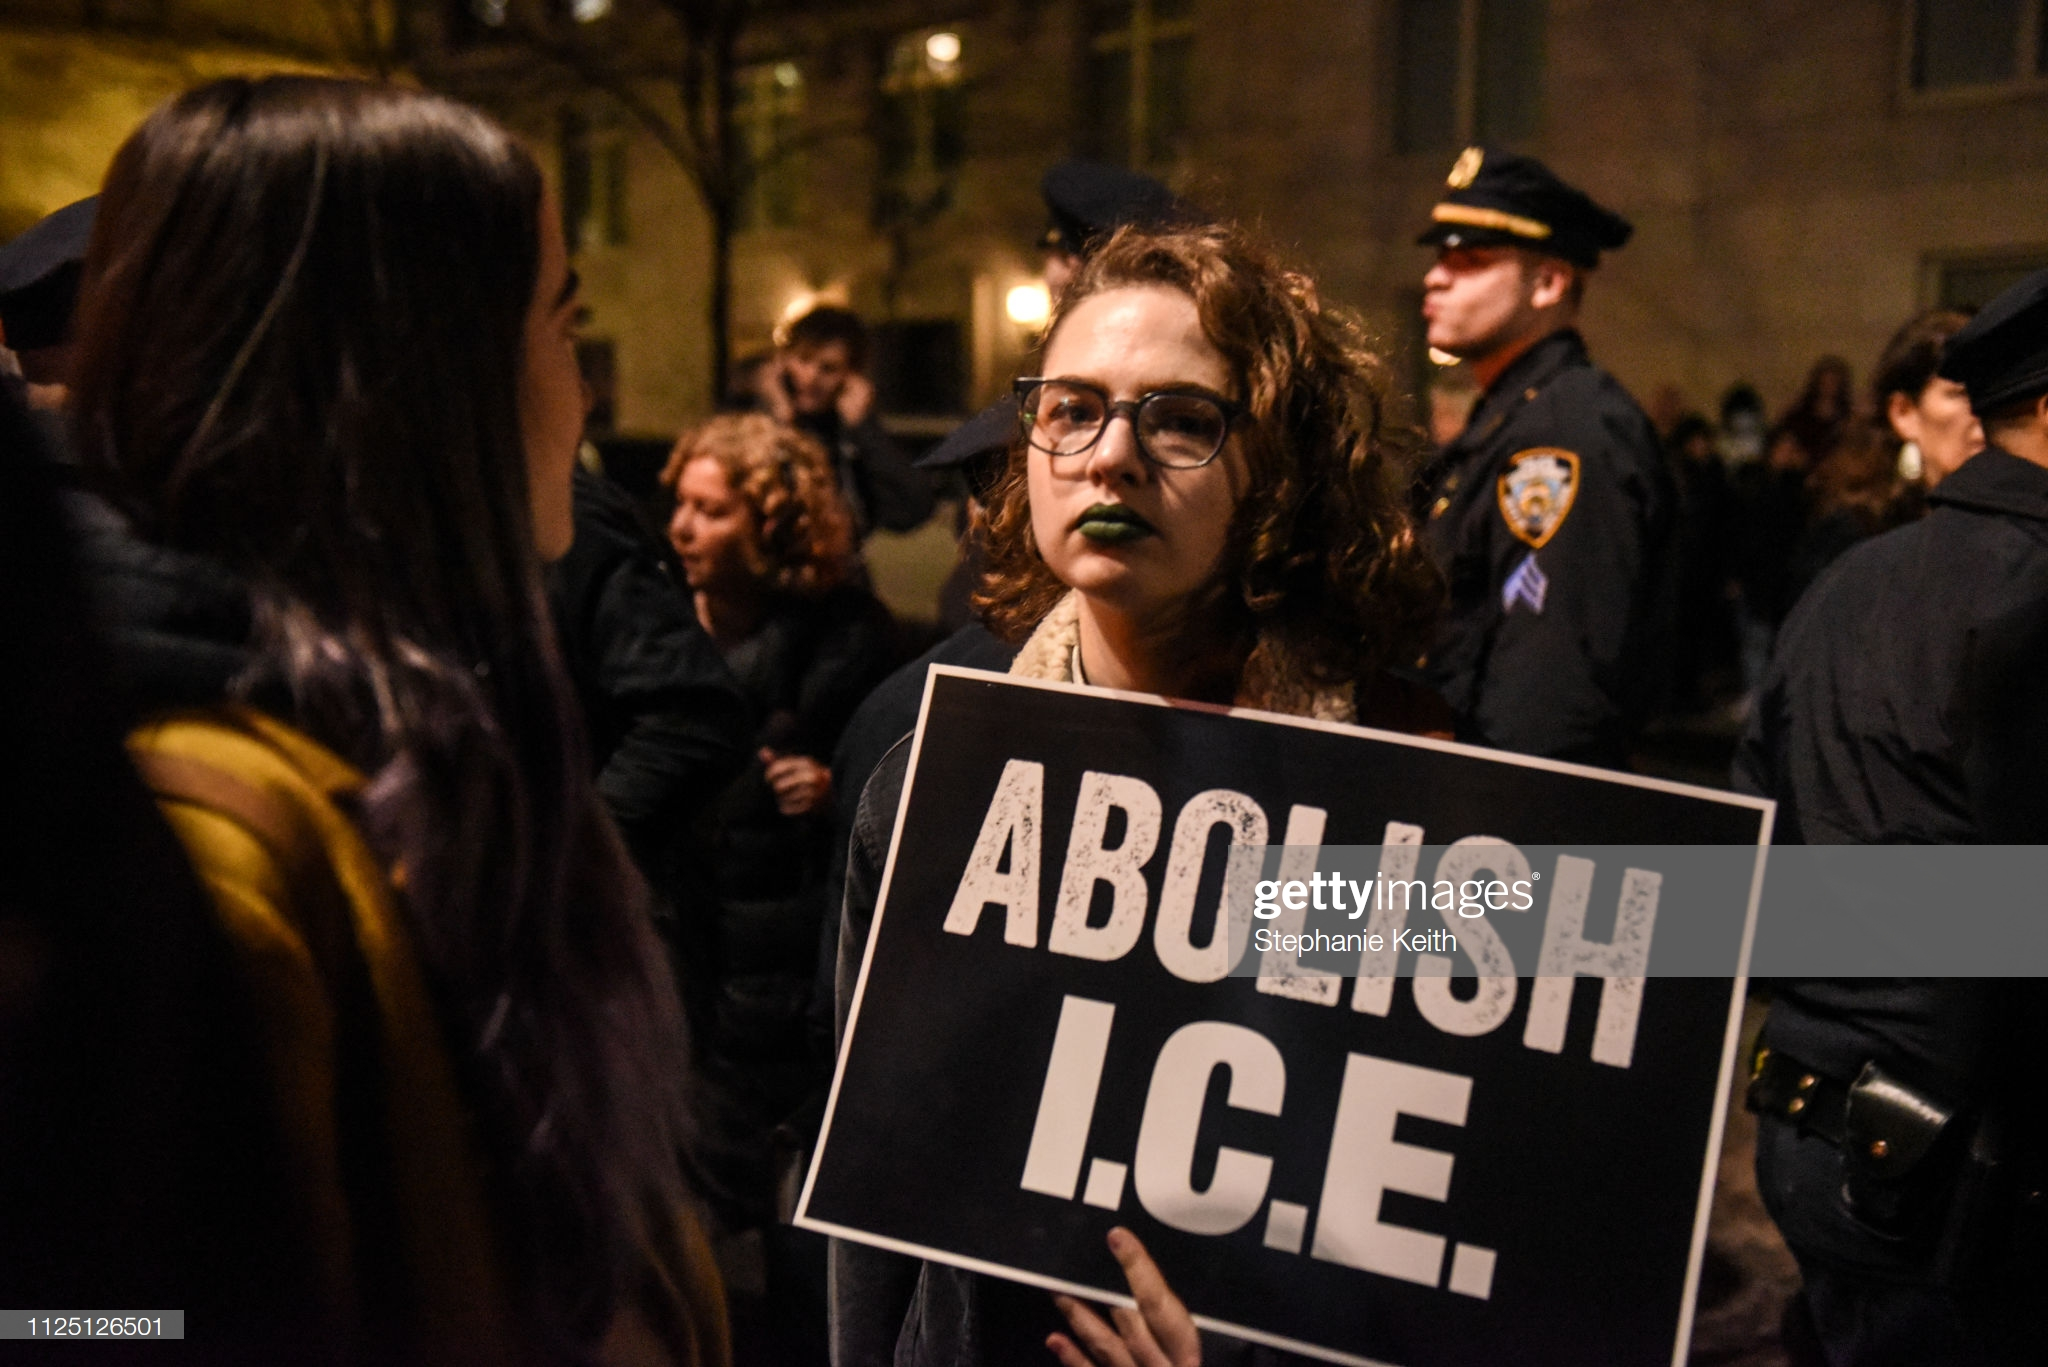 """NEW YORK, NY - FEBRUARY 15: People hold signs that read """"Abolish I.C.E."""" in front of Trump International Hotel on February 15, 2019 in New York City. The group is protesting U.S. President Donald Trump's declaration of a National Emergency in order to build his proposed border wall. (Photo by Stephanie Keith/Getty Images)"""